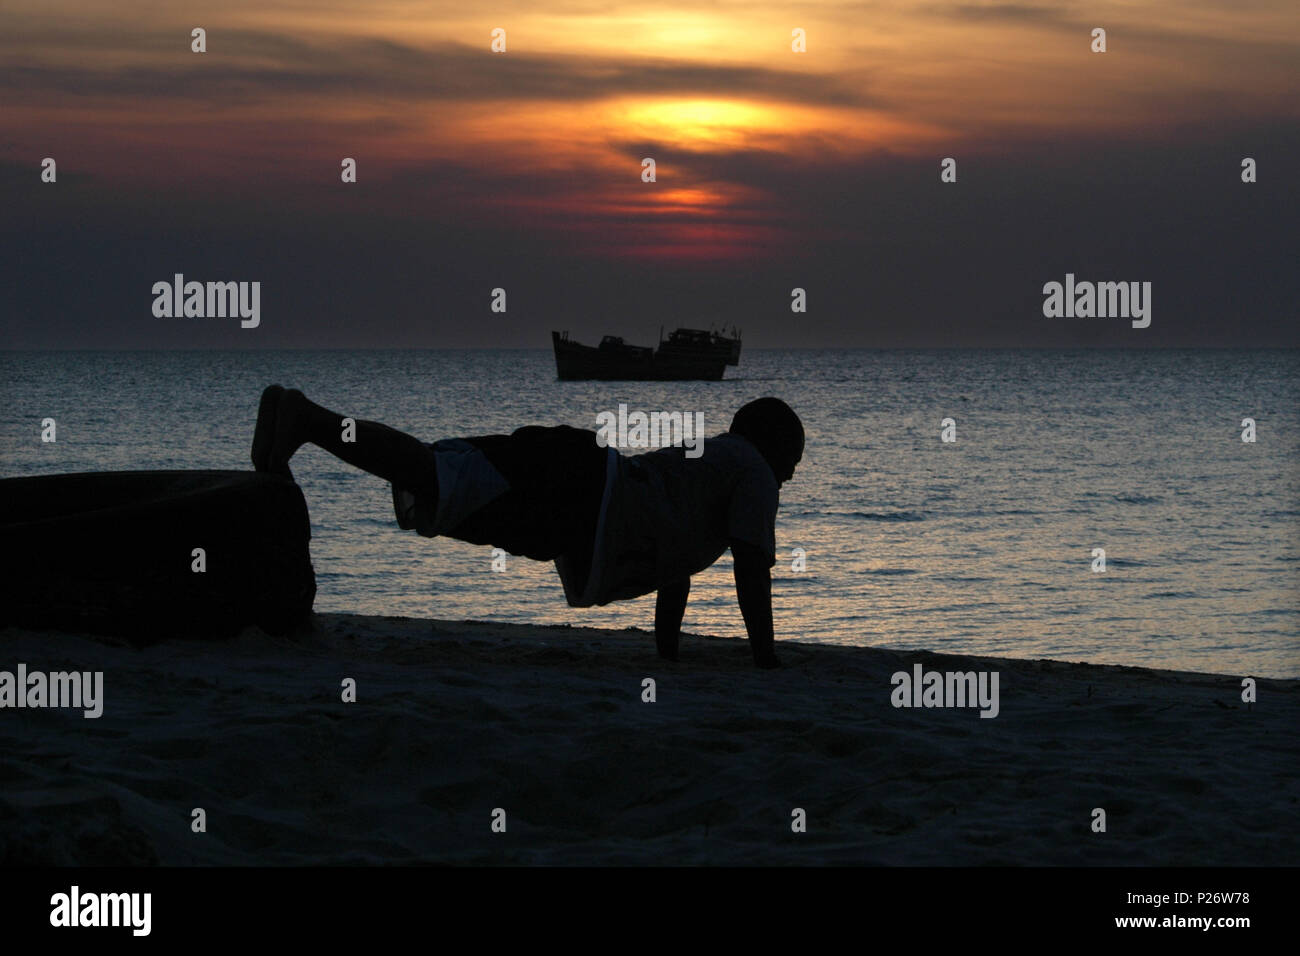 Keeping fit on the shore line in Zanzibar, Tanzania, Africa - Stock Image